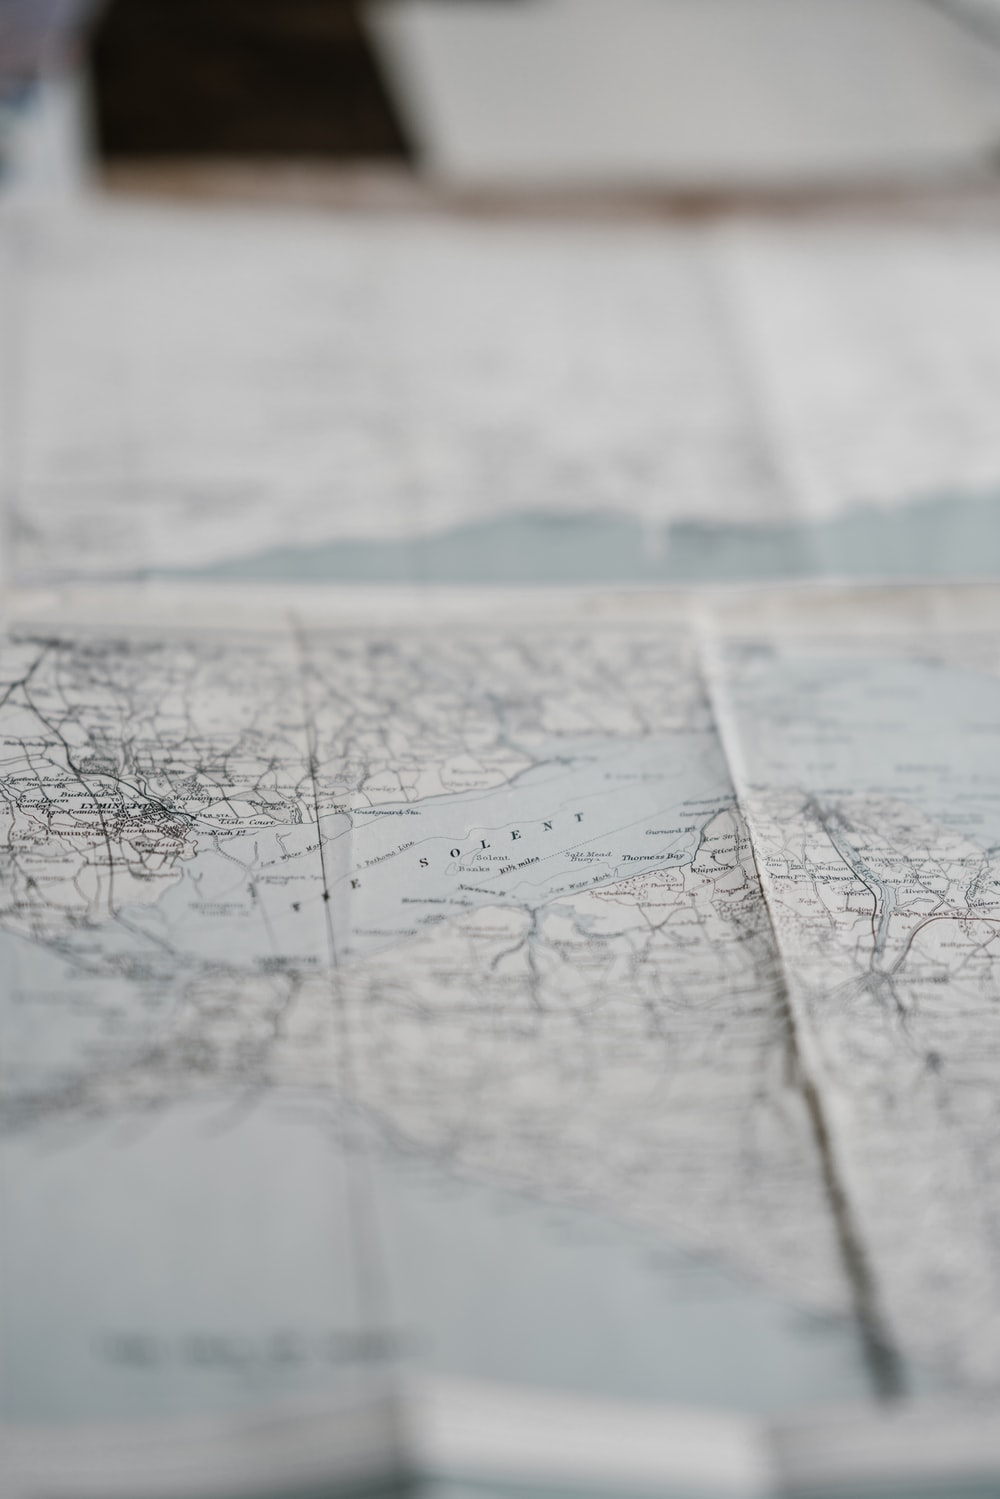 maps paper on table